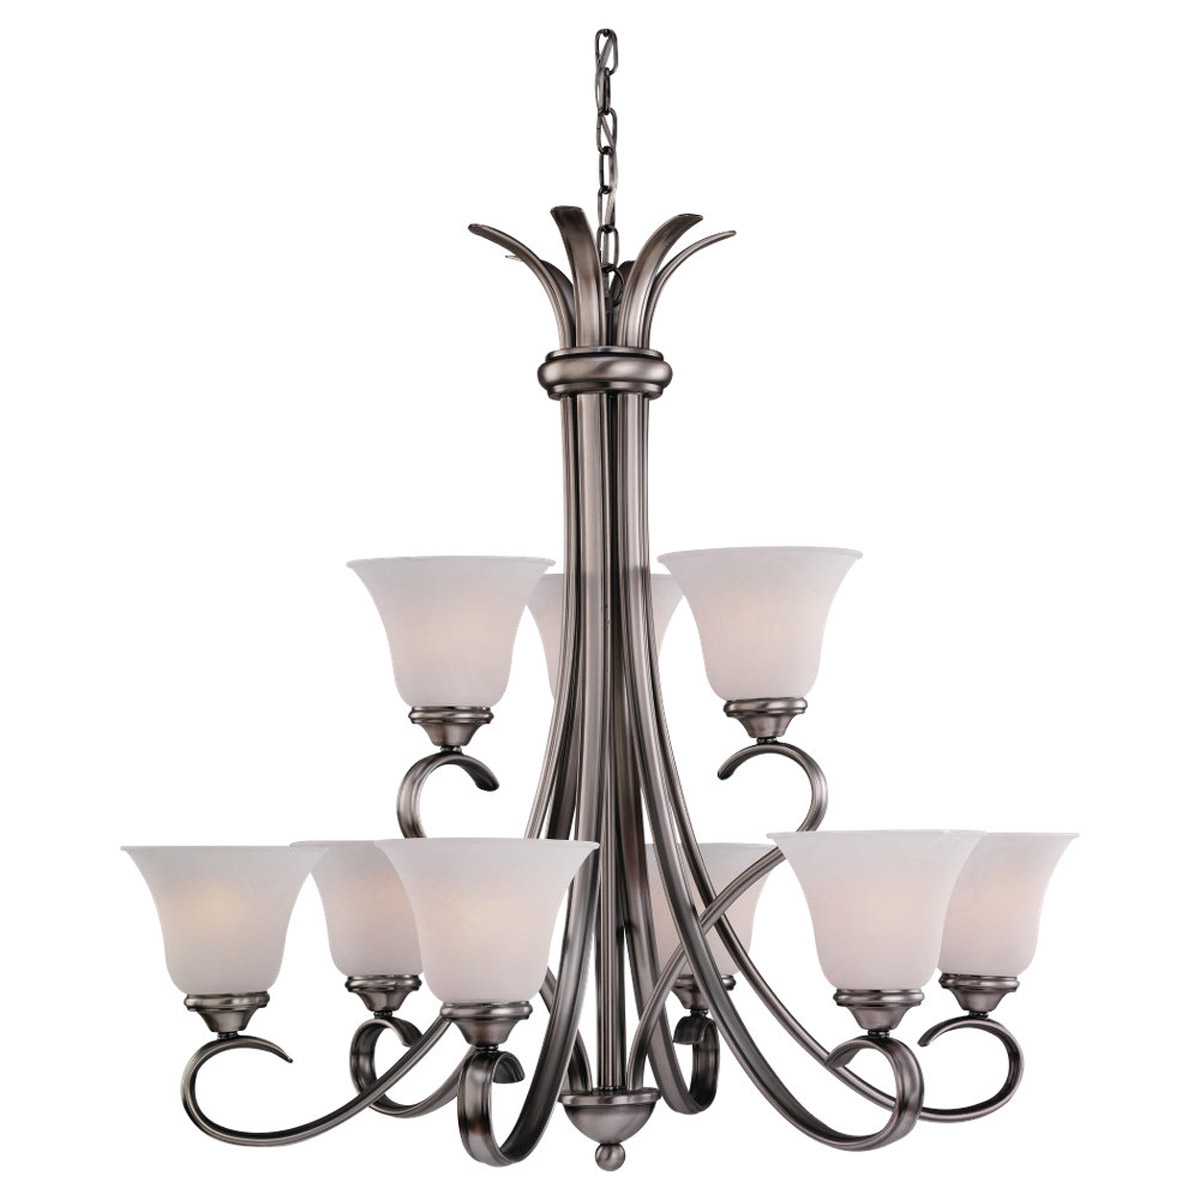 Sea Gull 31362-965 Rialto 9 Light 32 inch Antique Brushed Nickel Chandelier Ceiling Light in Etched White Alabaster Glass photo